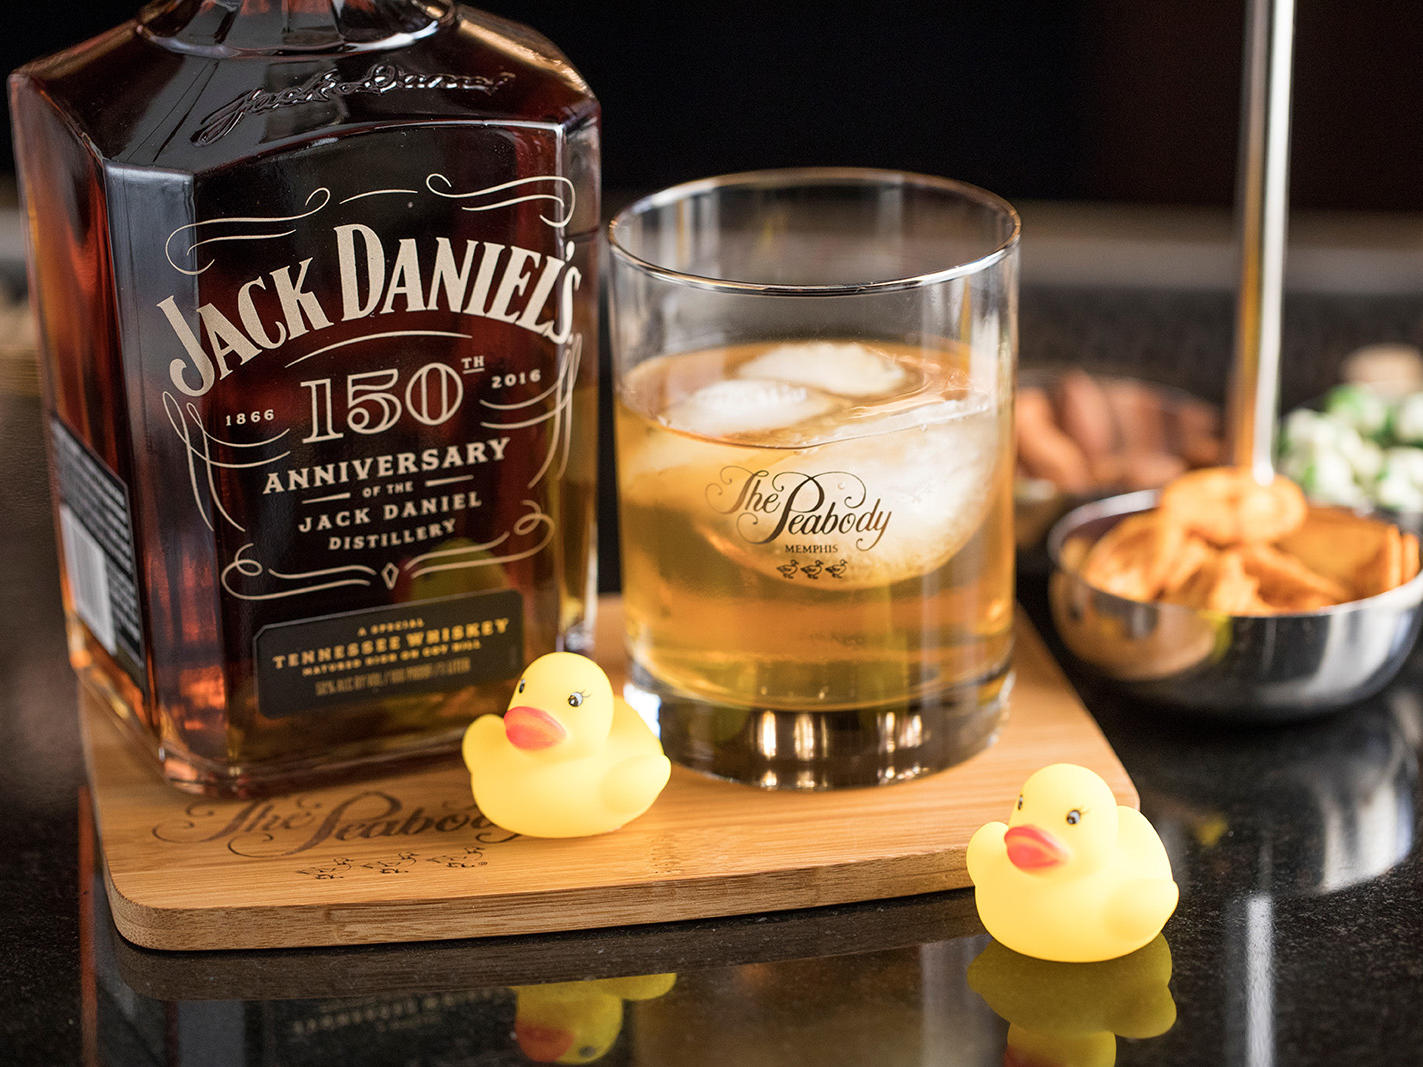 Bottle and poured glass of Jack Daniels' with rubber ducks